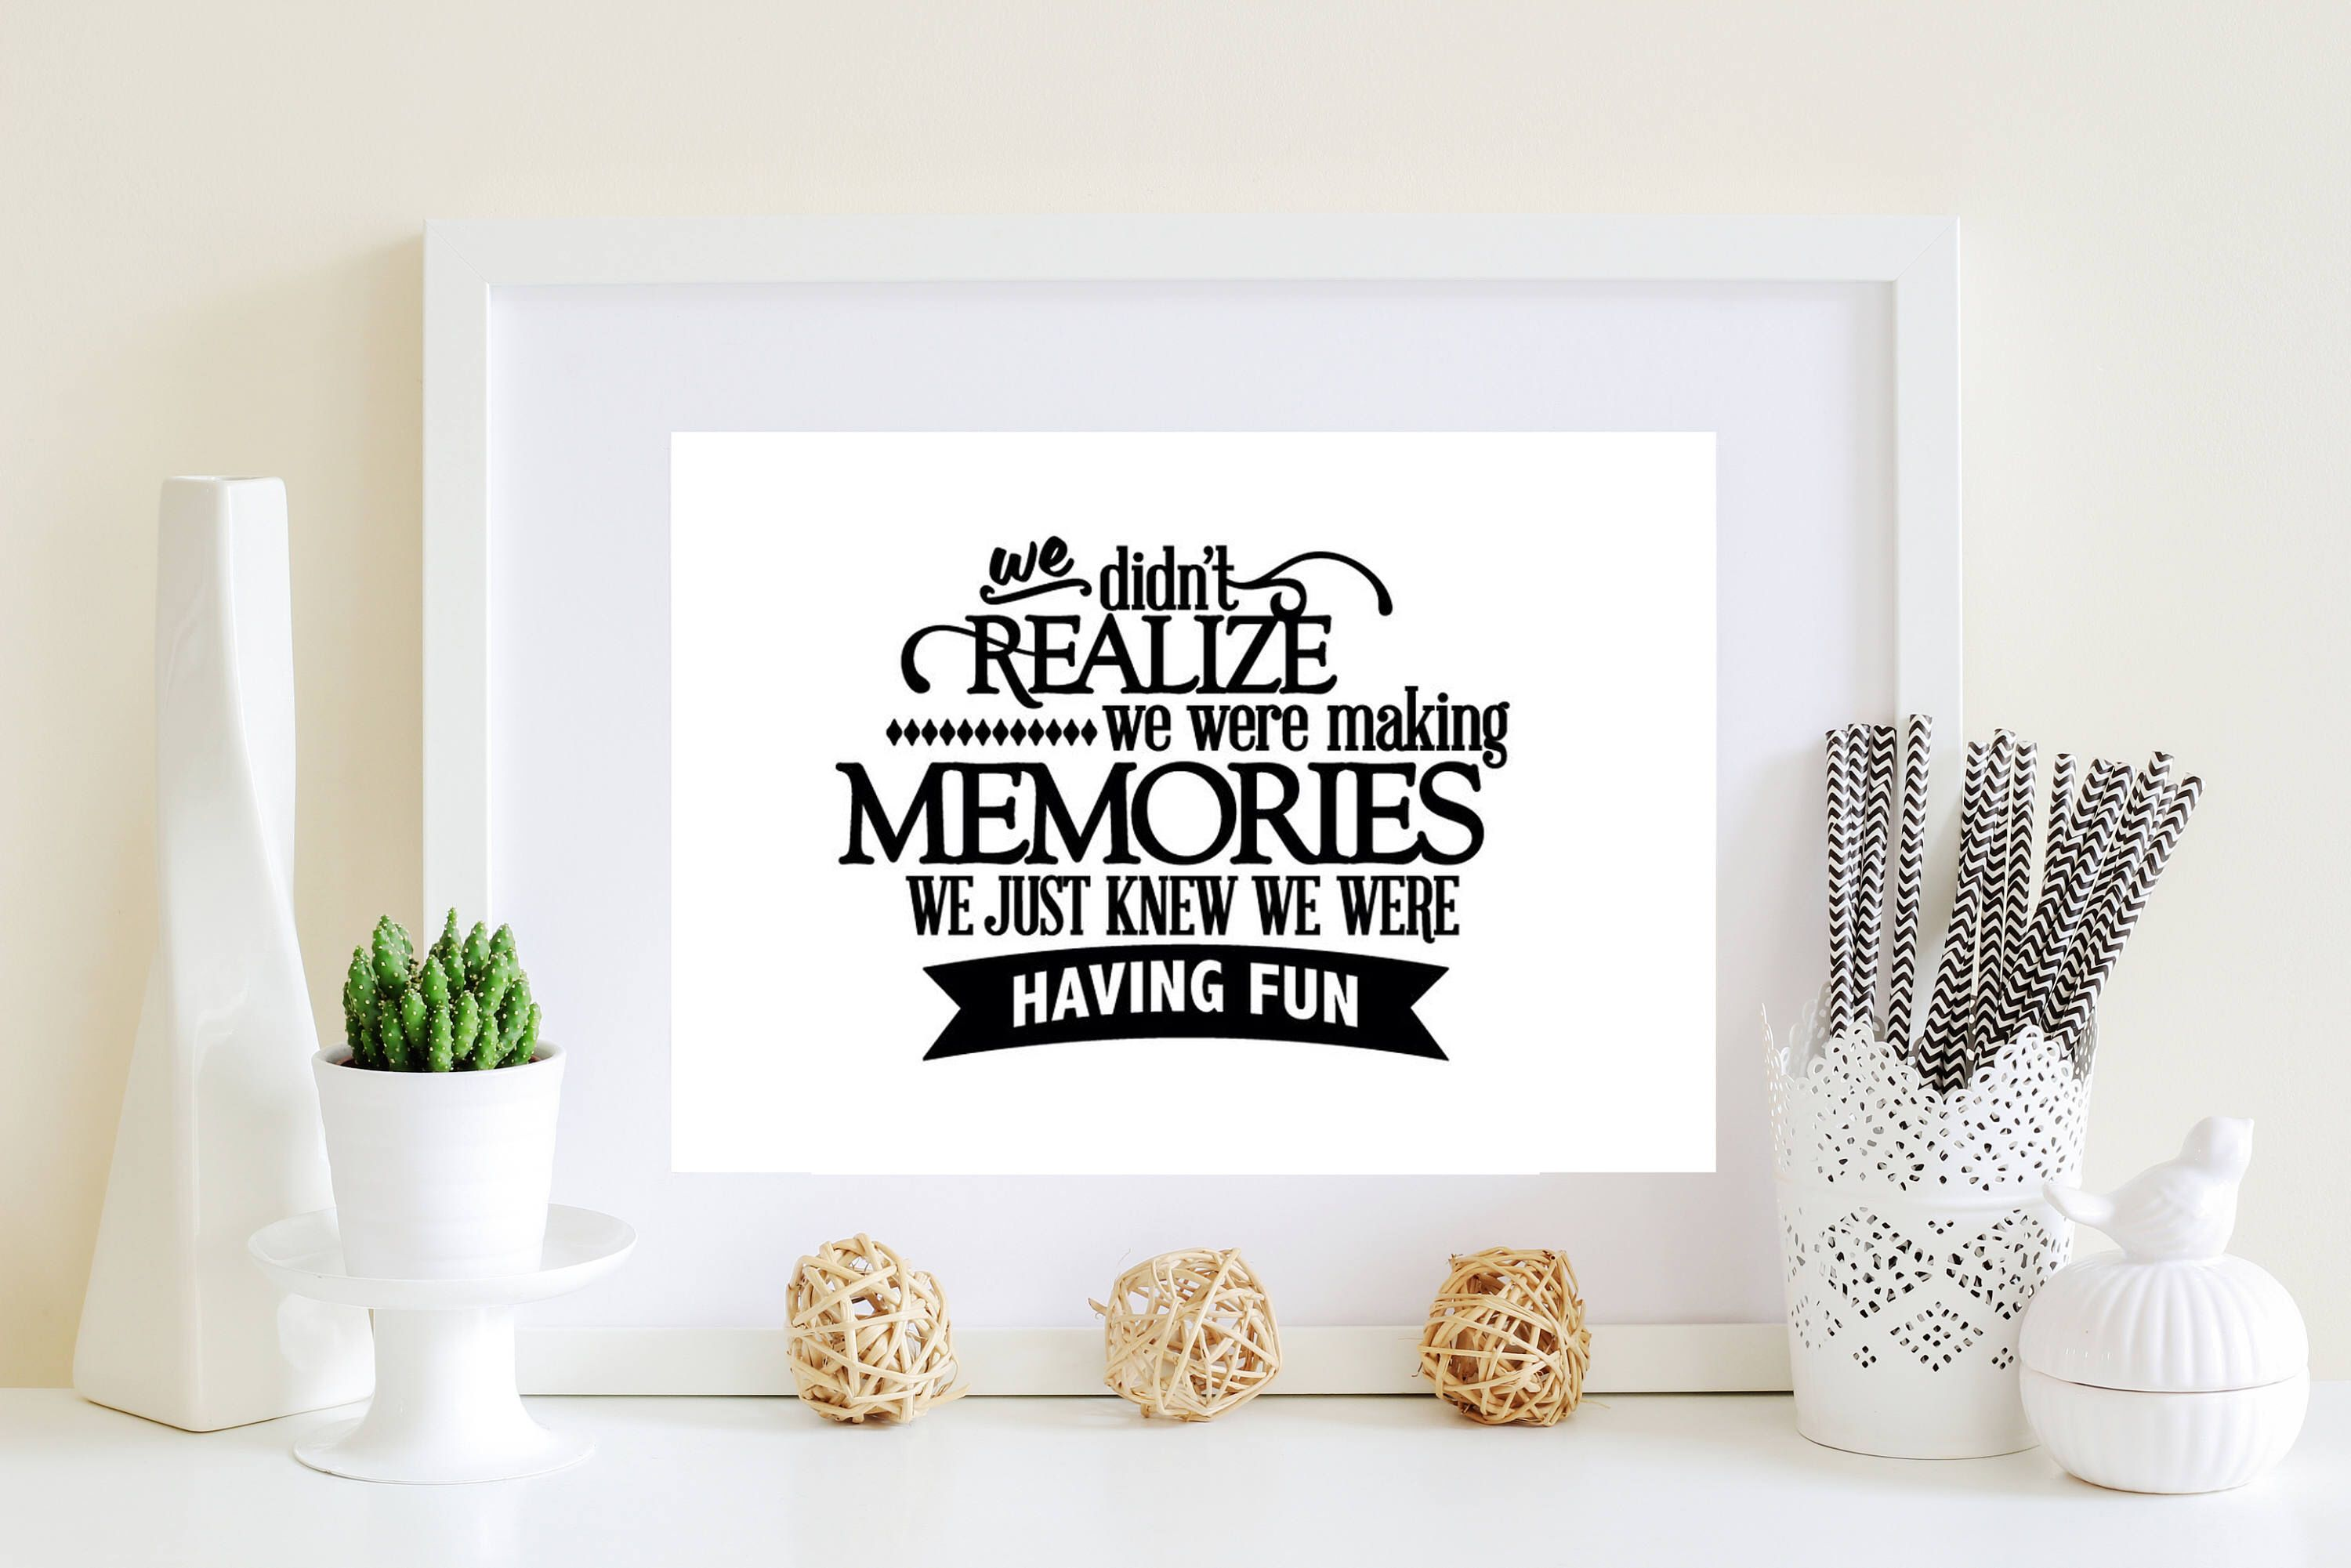 8x10 Decal Vinyl Letters Easy Gift Gift For Mom Diy Gift Sentimental Quote Vinyl Sticker We Didn T Realize We Were Making Memories With Images Vinyl Wall Decals Vinyl Lettering Wall Decals